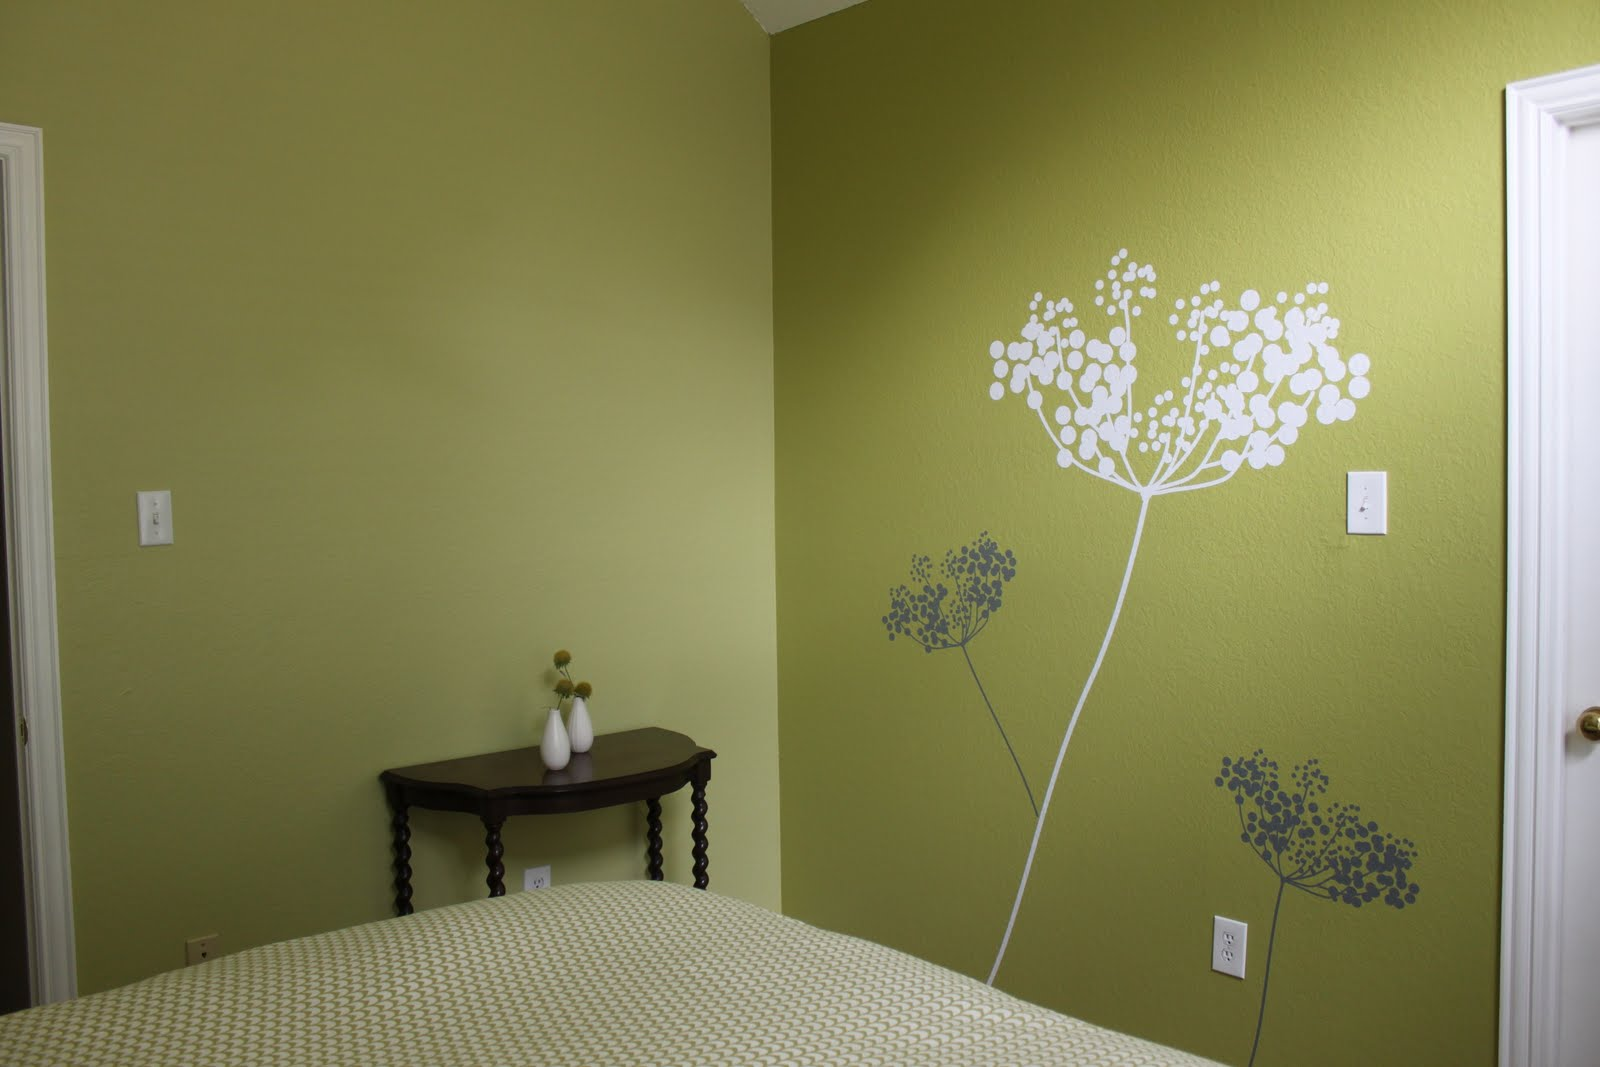 Small Waiting Room Ideas | Joy Studio Design Gallery ...